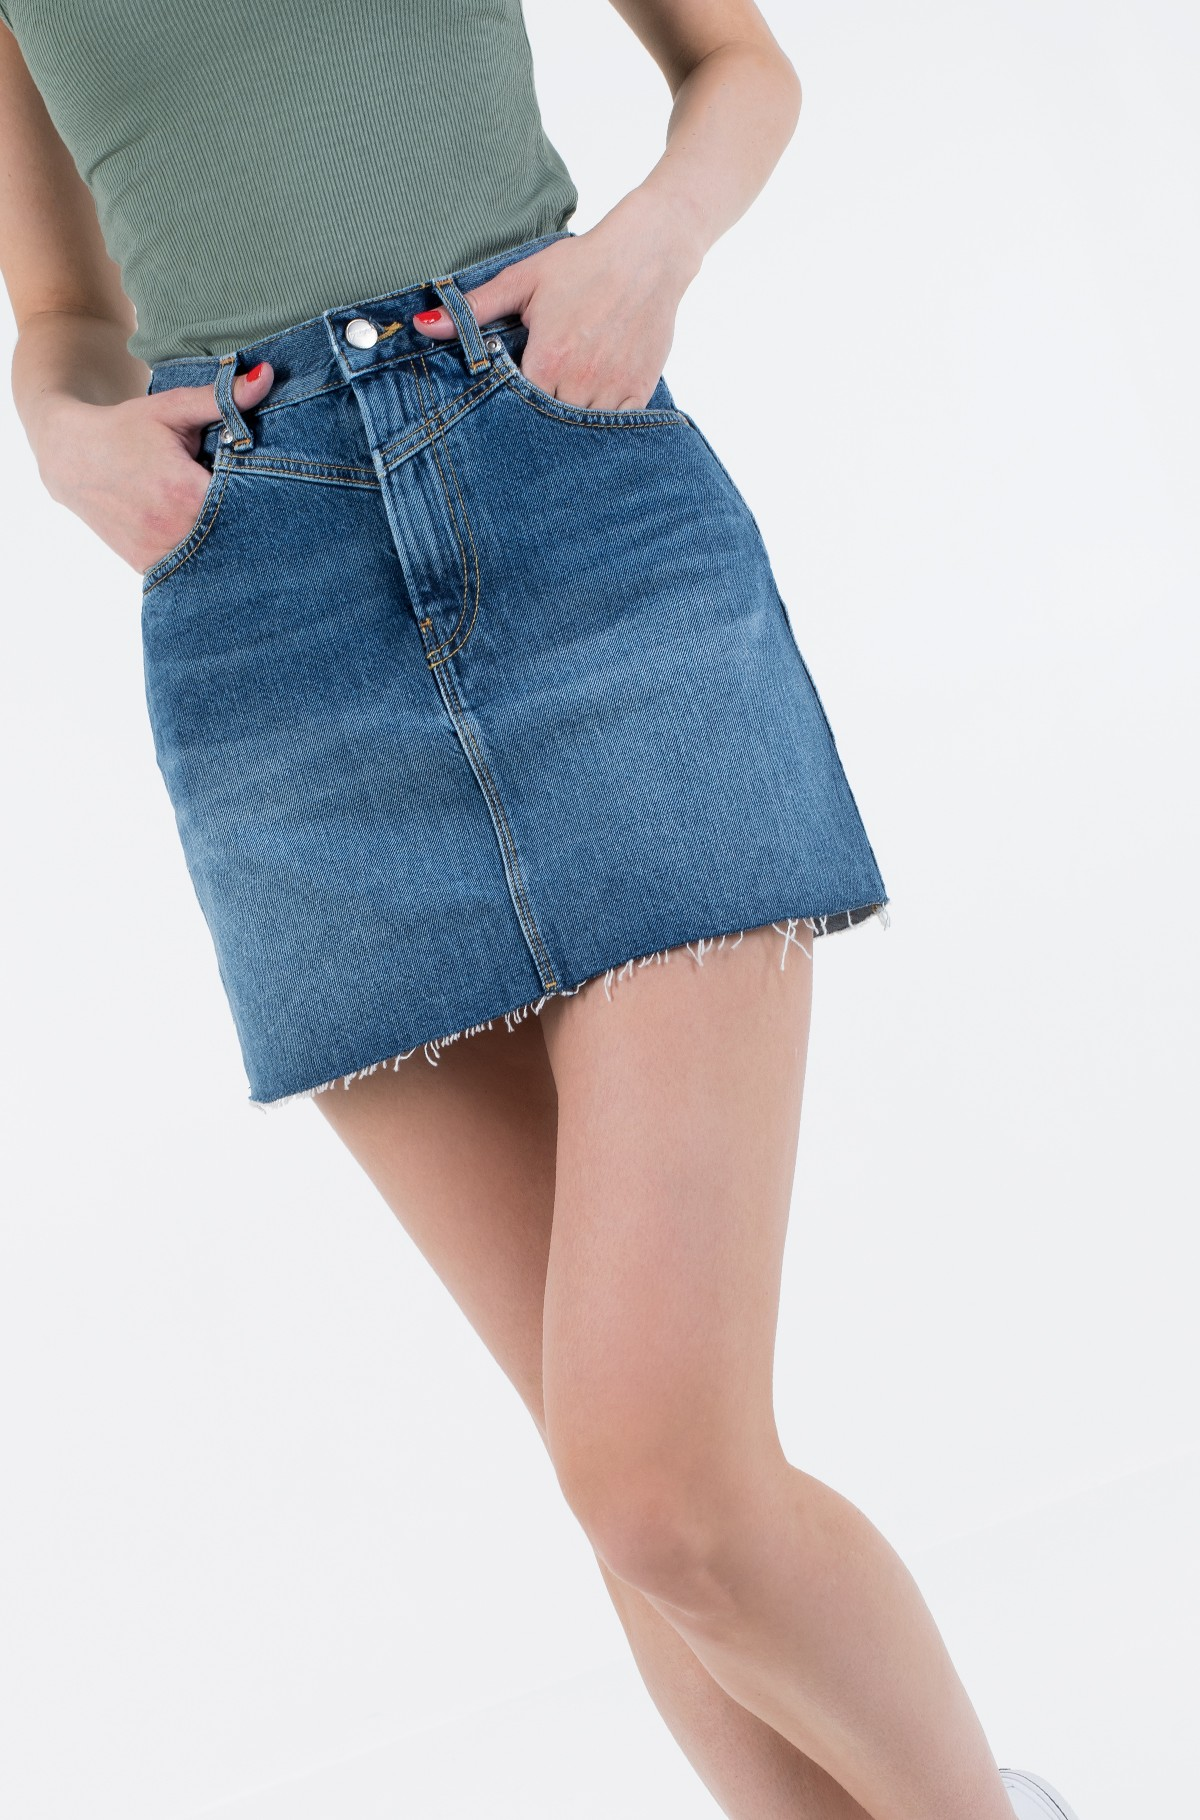 Denim skirt  RACHEL SKIRT/PL900877HD3-full-1